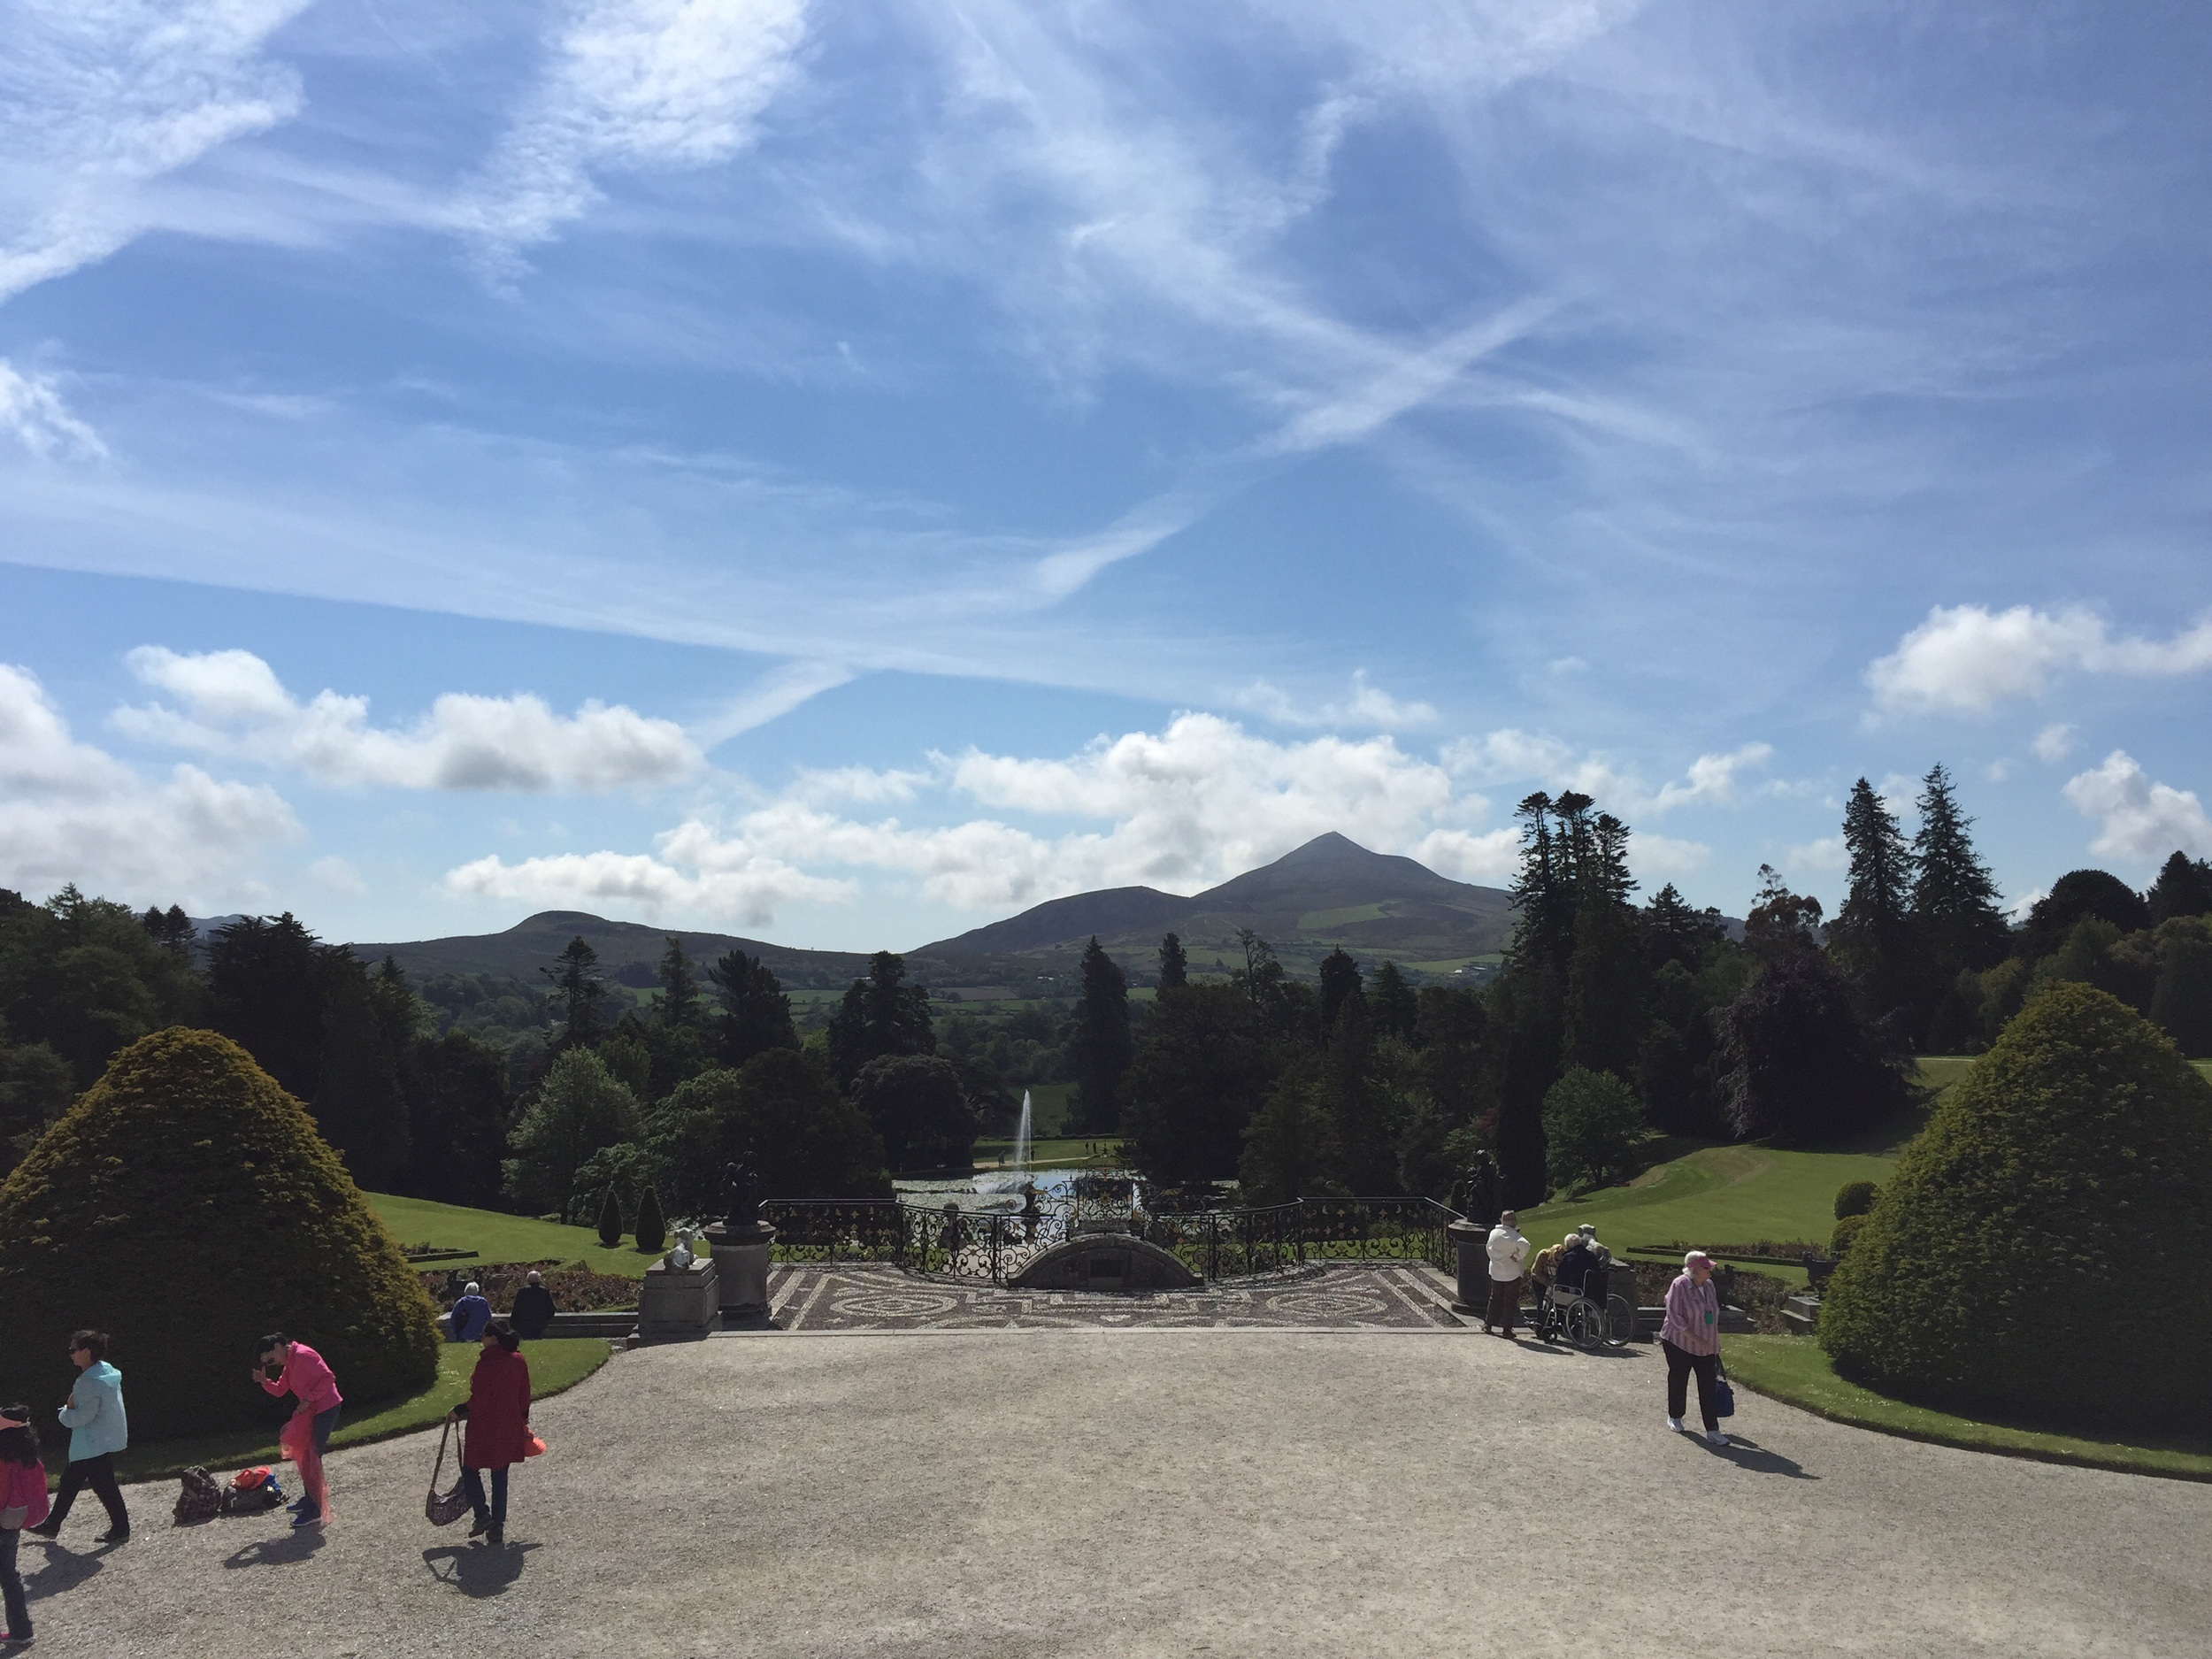 A view Elizabeth Bennett would have been impressed by, had Pride & Prejudice taken place in Ireland...